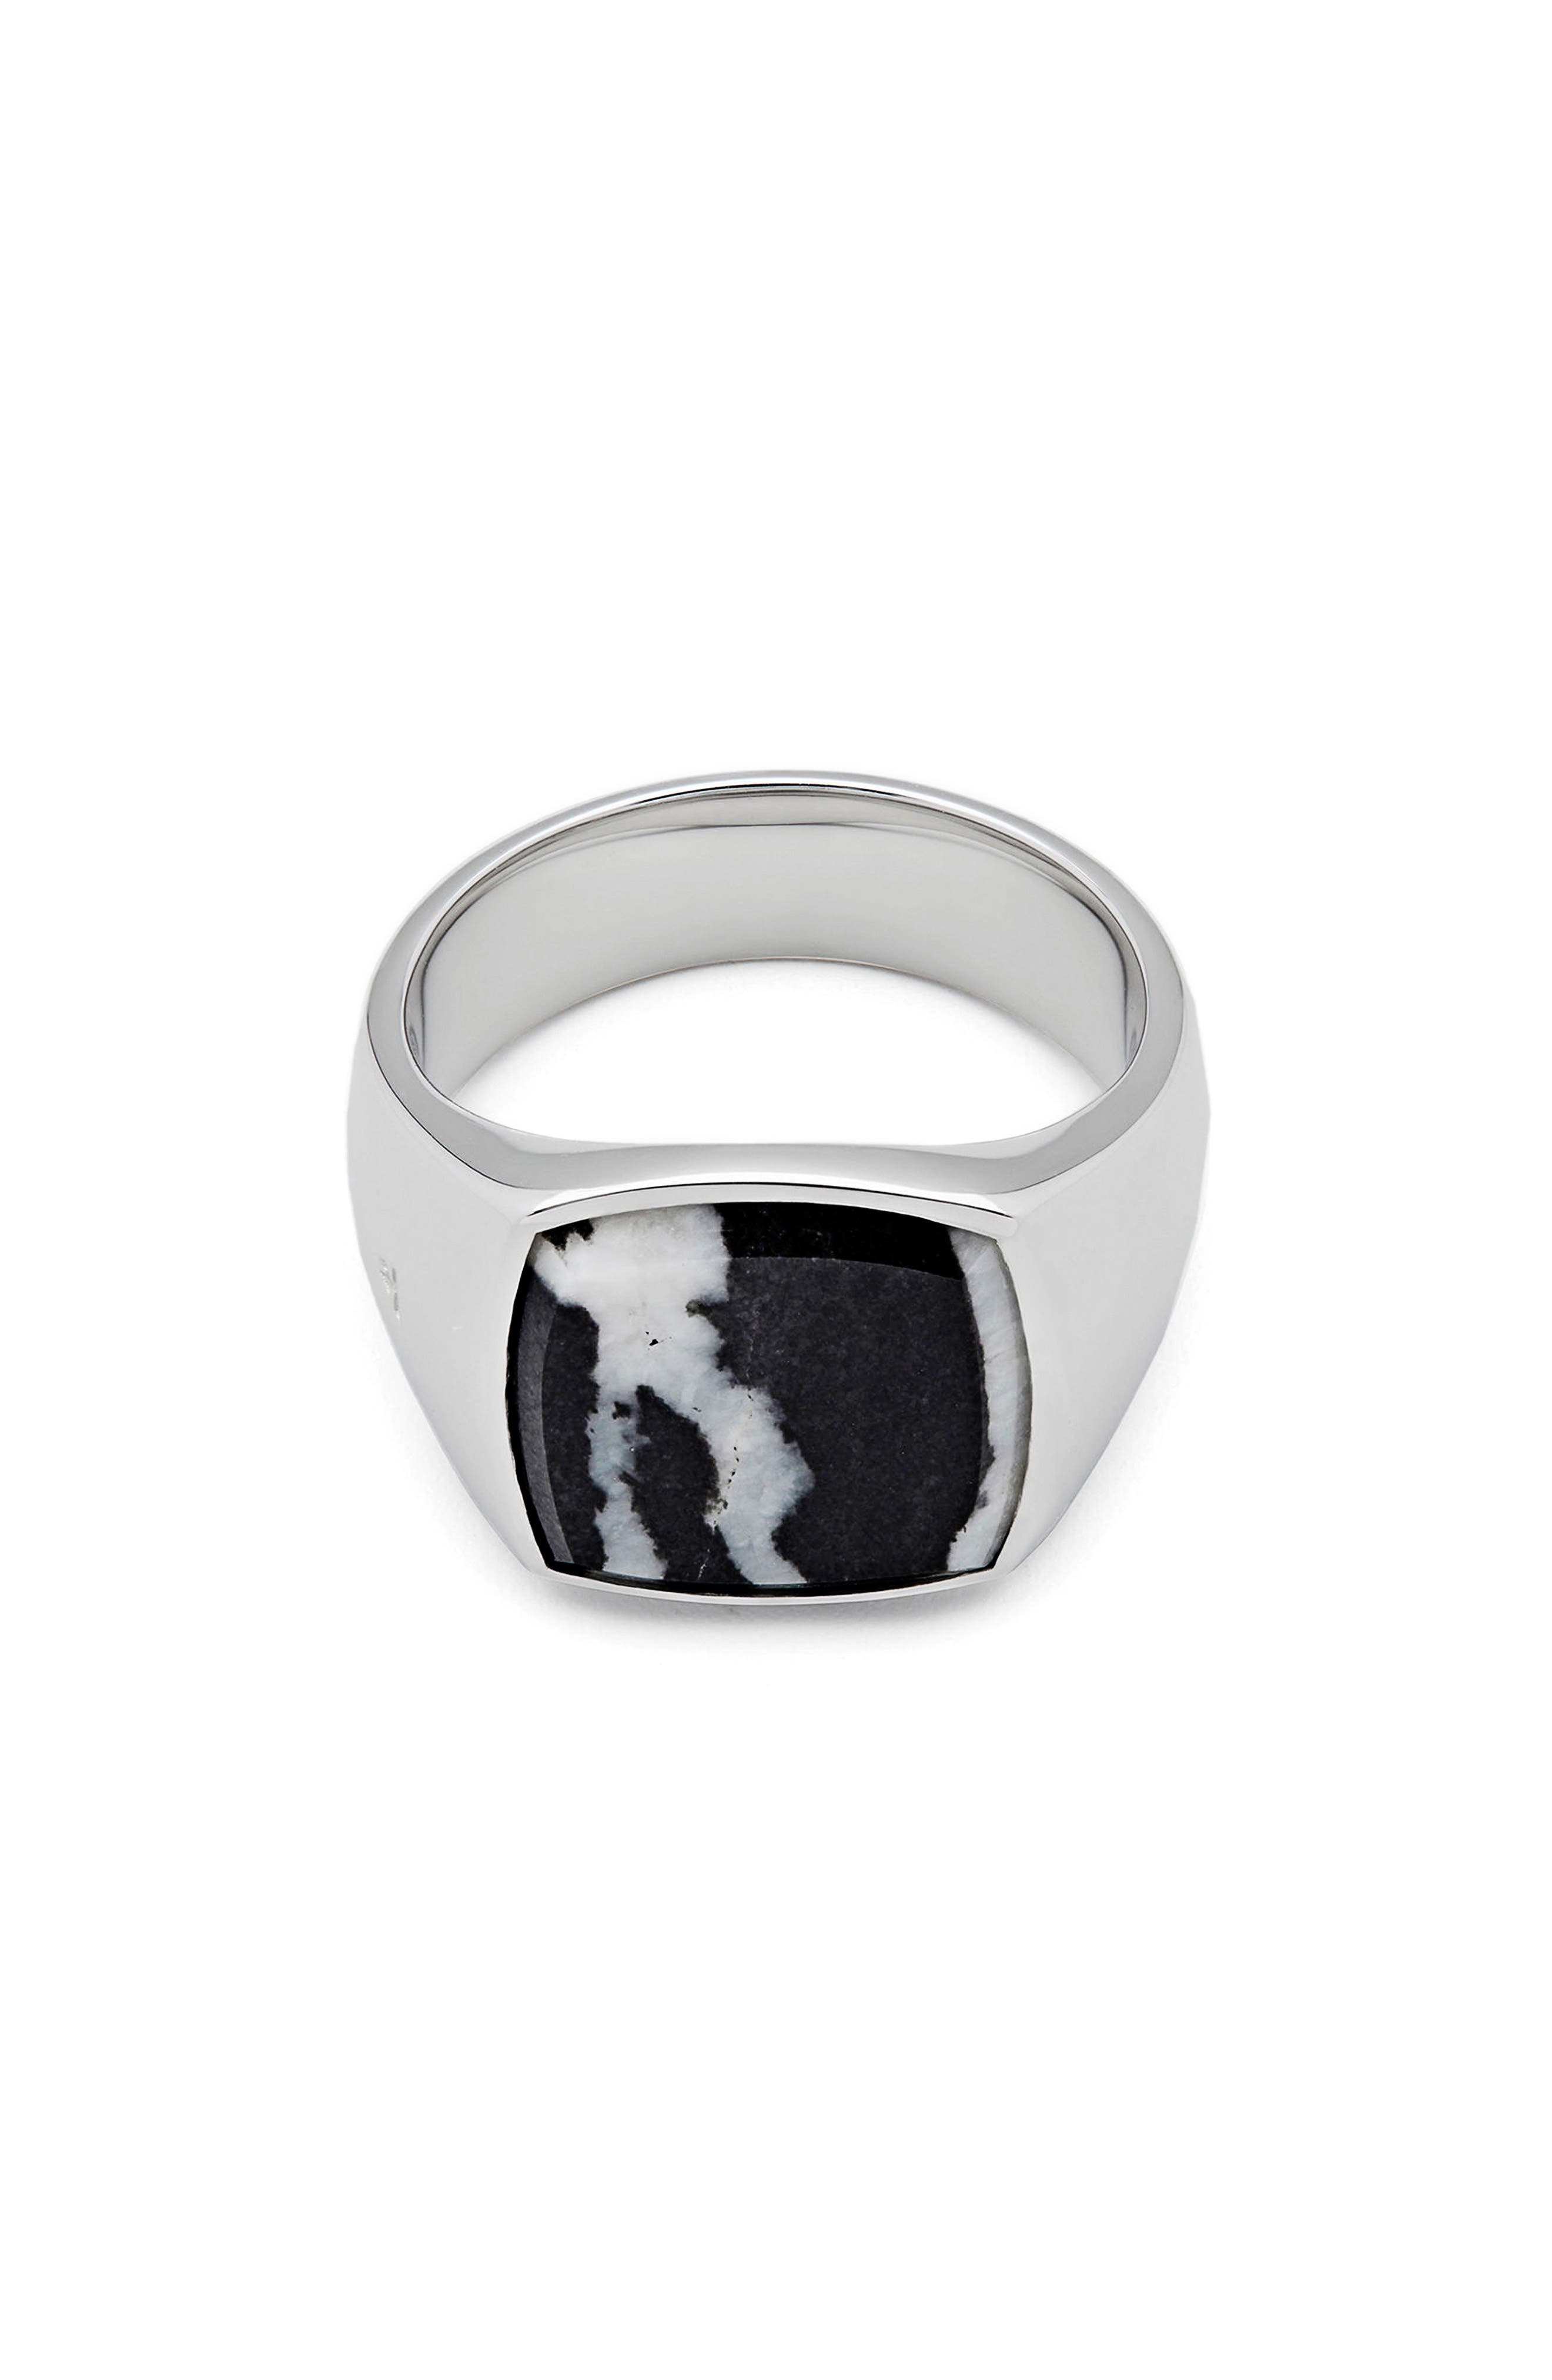 Men's Zebra Marble Cushion Signet Ring,                         Main,                         color, 925 Sterling Silver